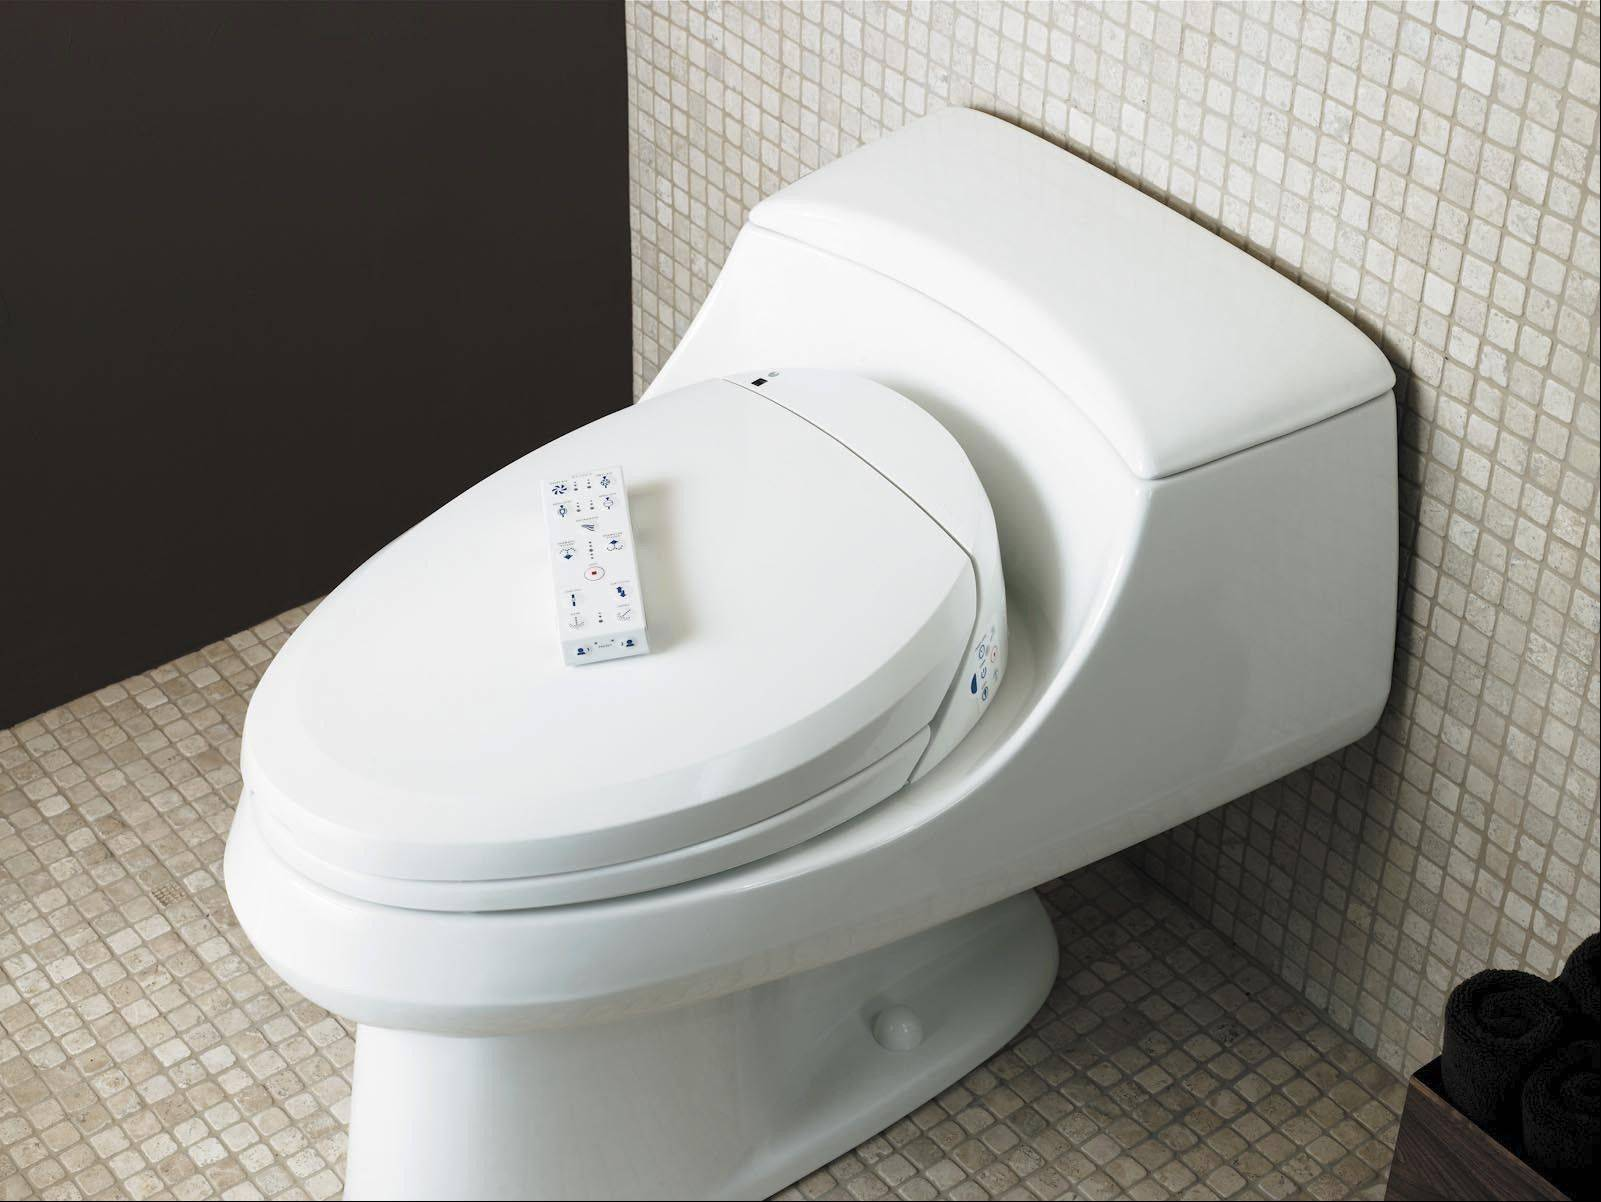 Bidet toilet seats are getting a lot of attention these days as American homeowners consider their bathroom-technology options.